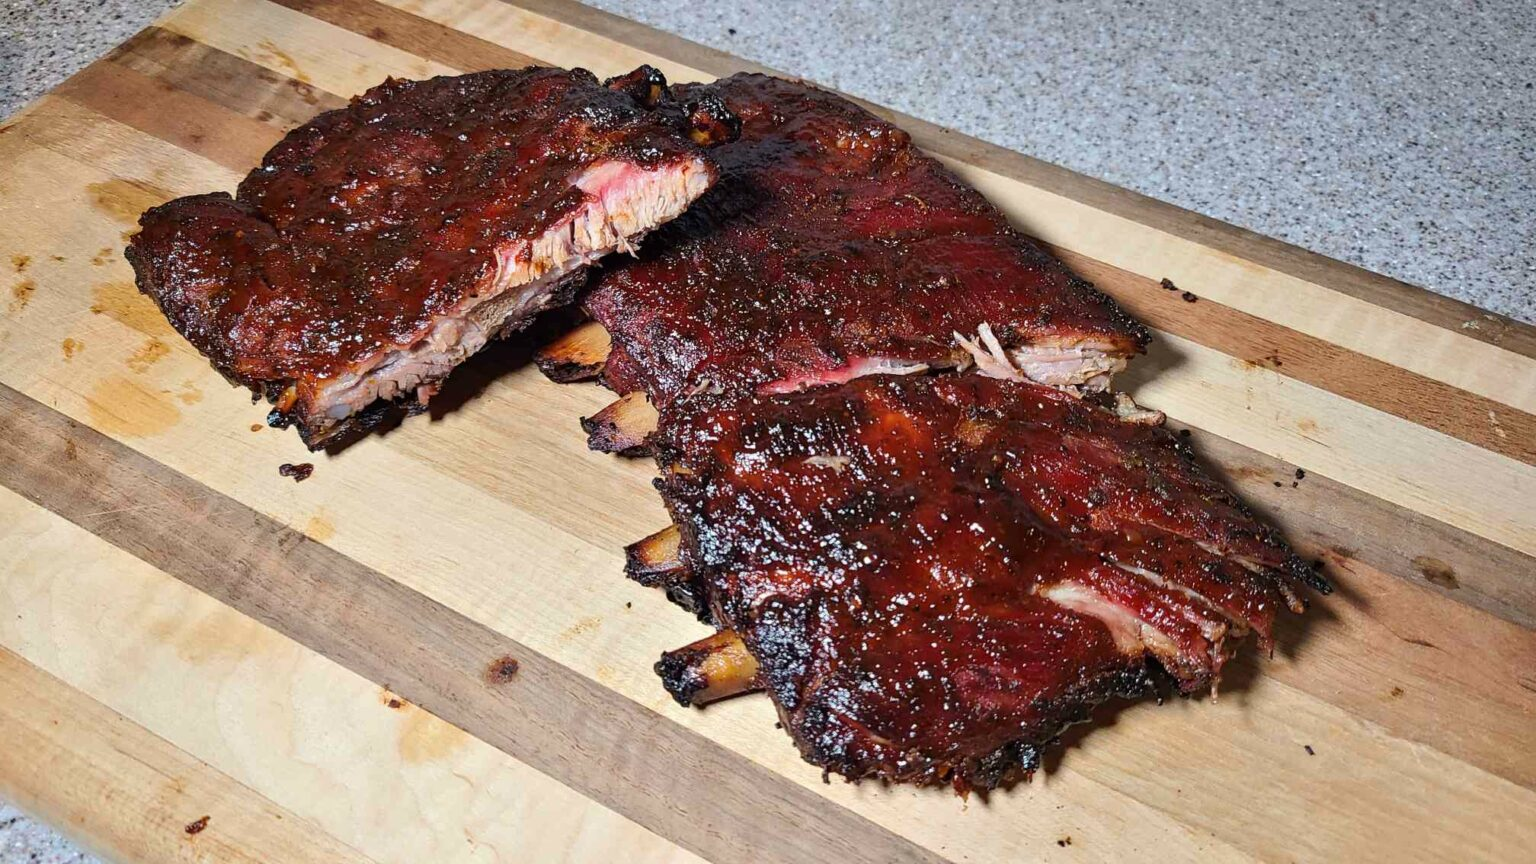 St Louis Style Ribs Cooked and ready to eat